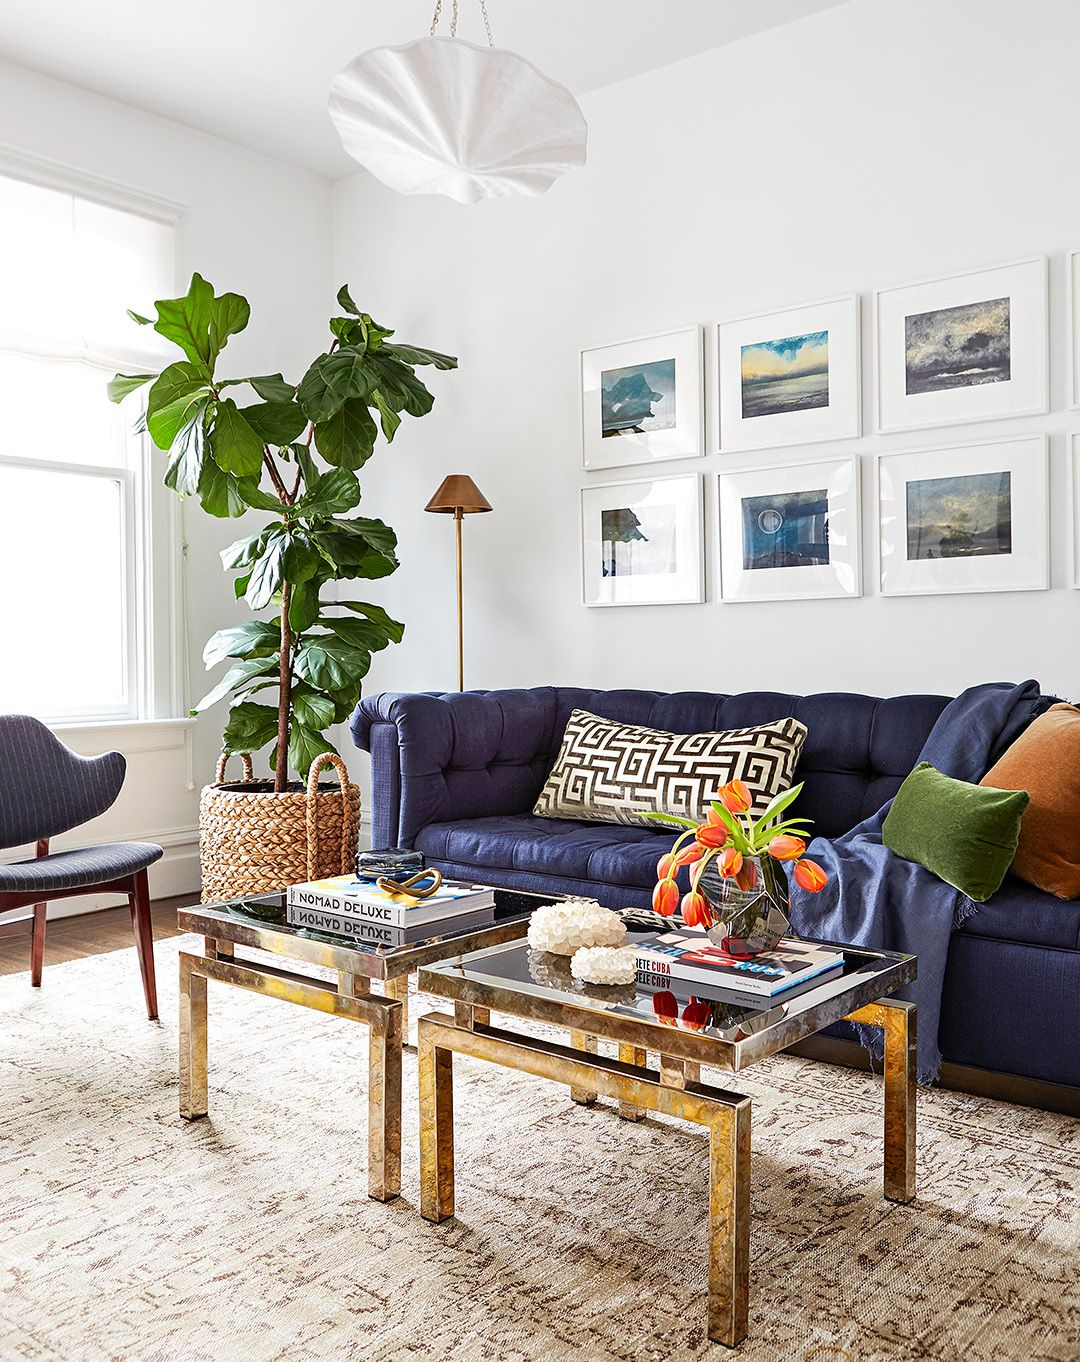 70 Living Room Furniture Ideas Small Spaces 2020 Small Living Room Decor Living Room Setup Small Living Rooms